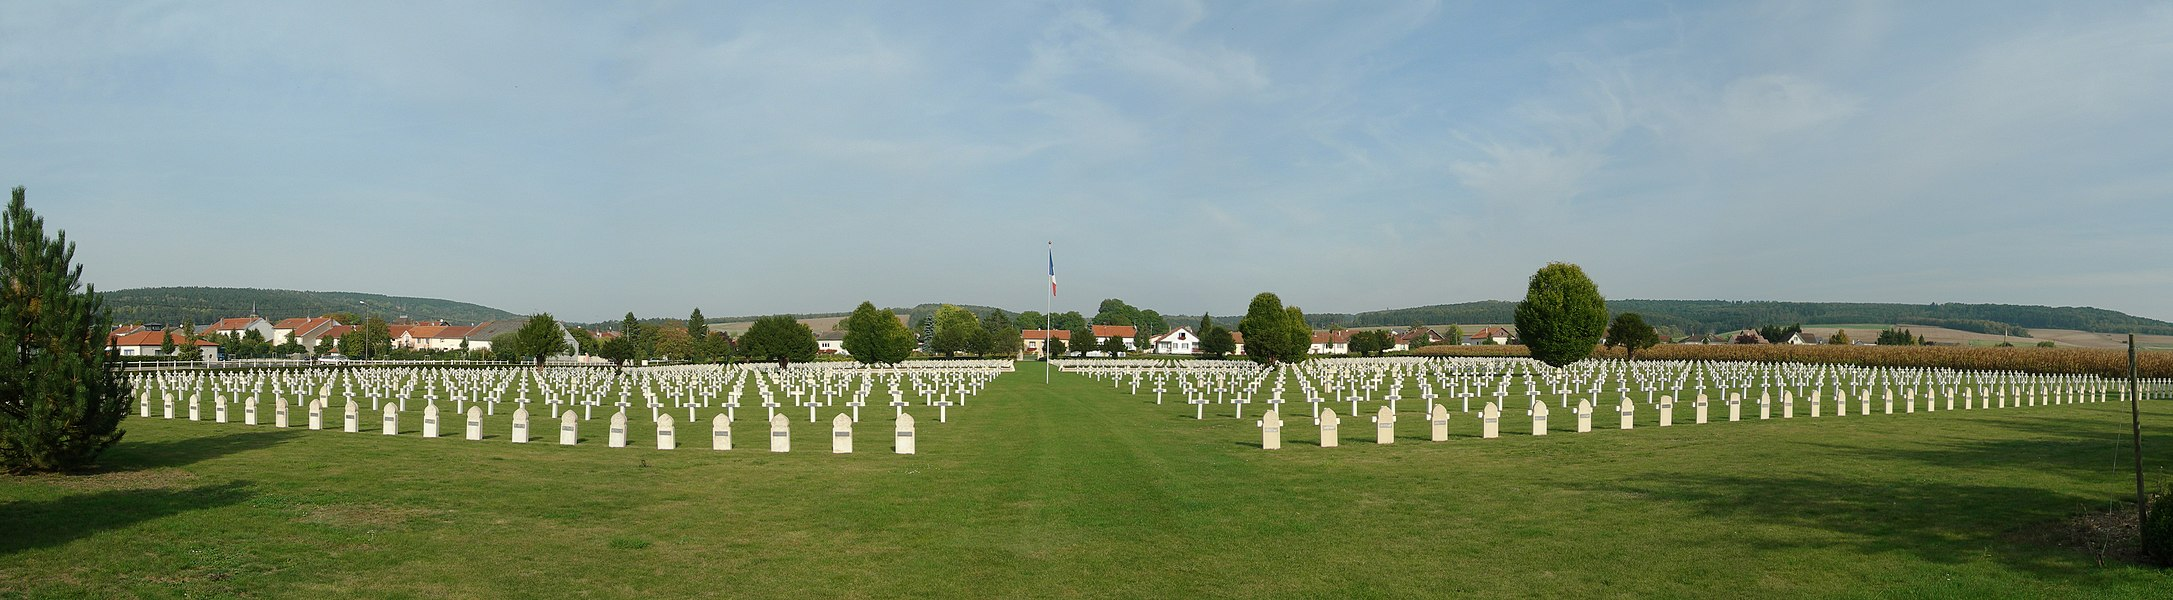 WWI Cemetery at Bras-sur-Meuse